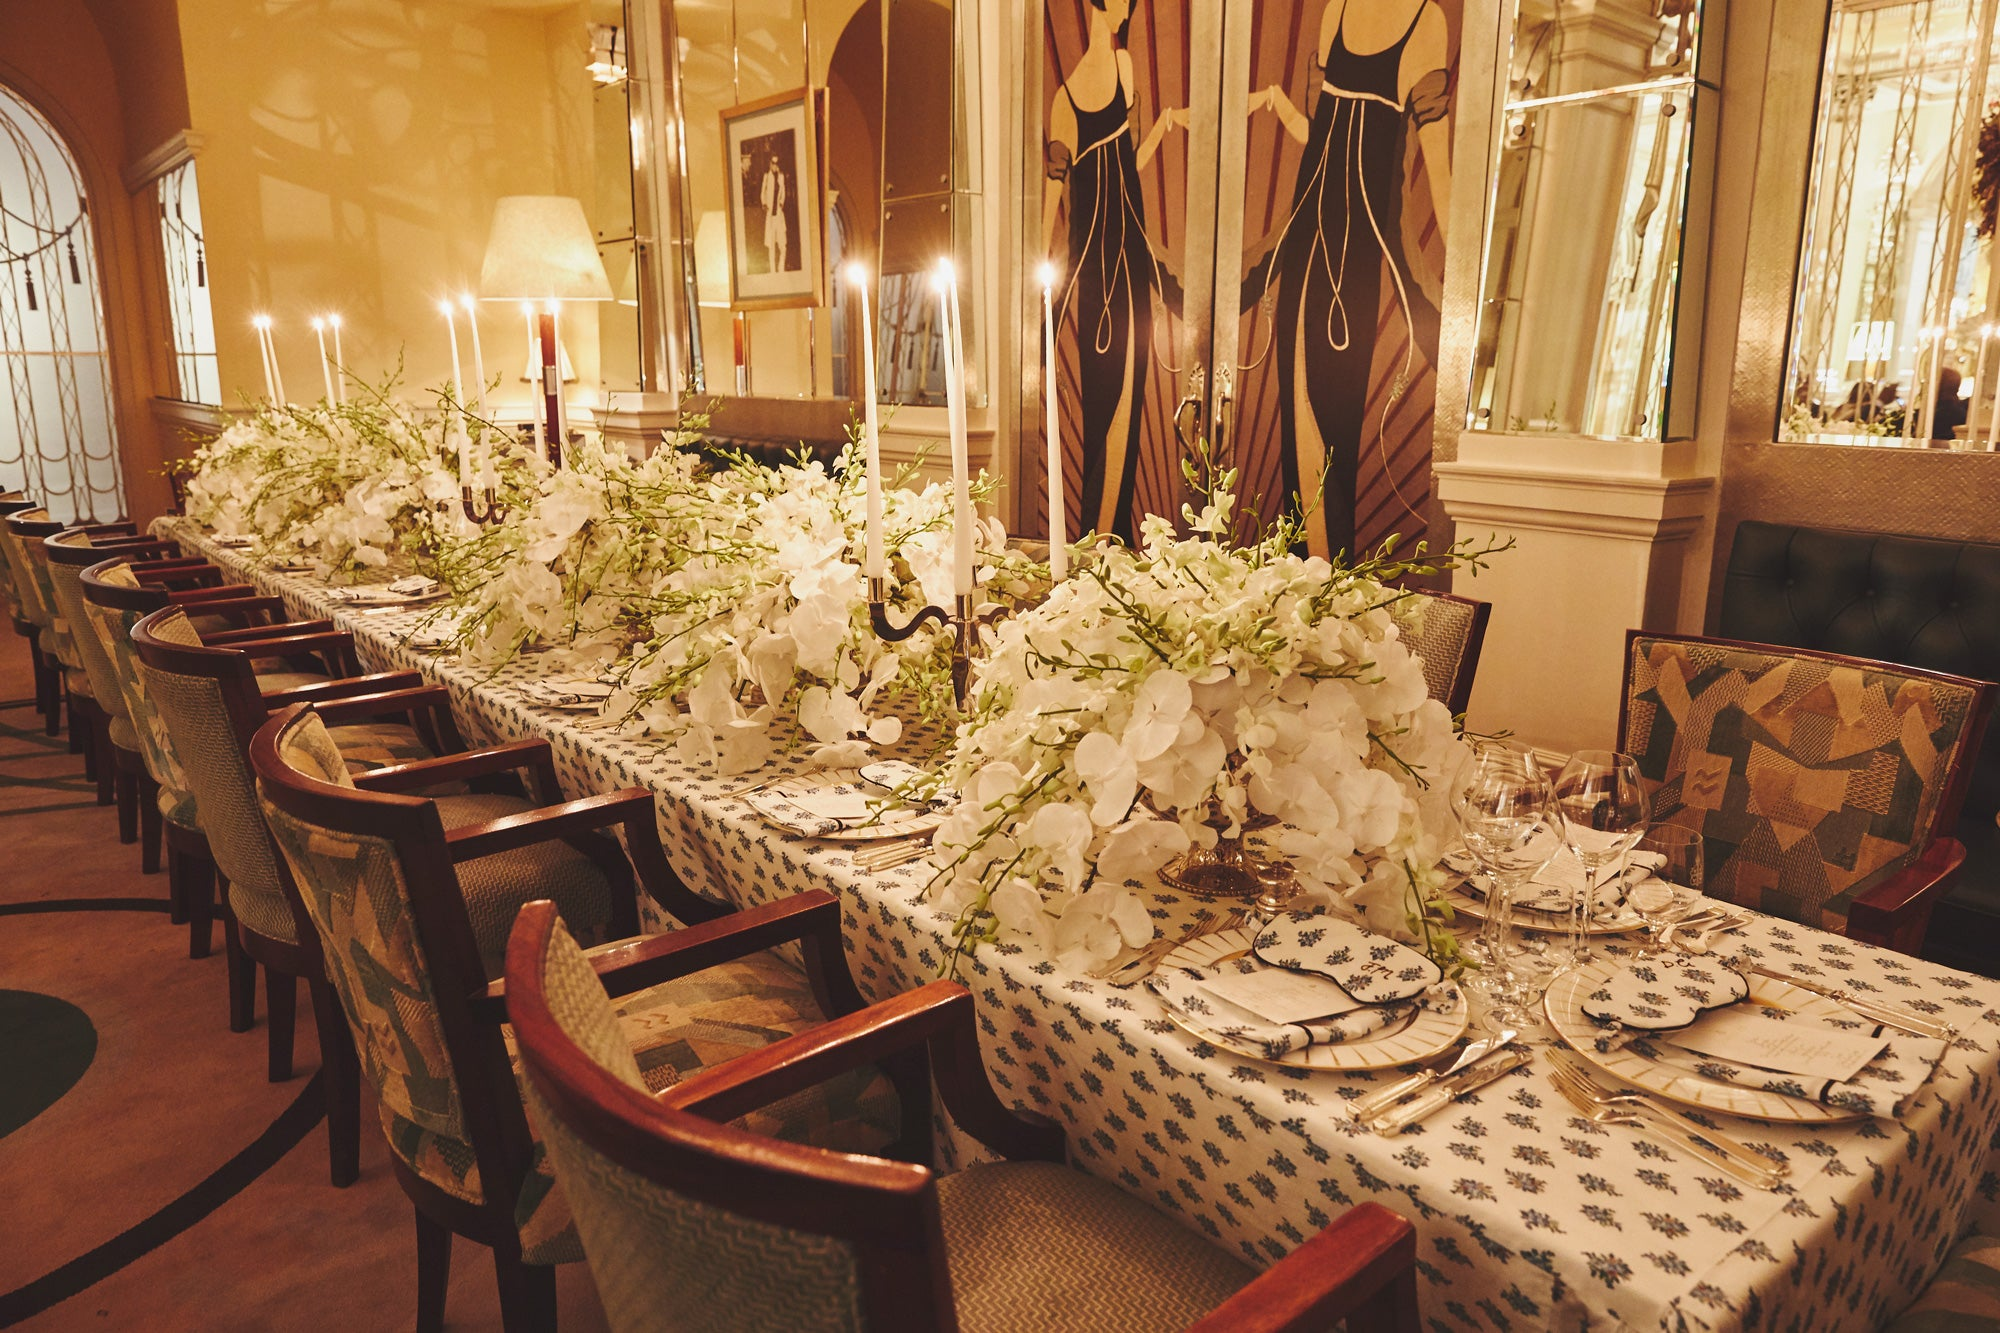 Table setting designed by FLWRBOX -  An Evening at Claridges with Emilia Wickstead